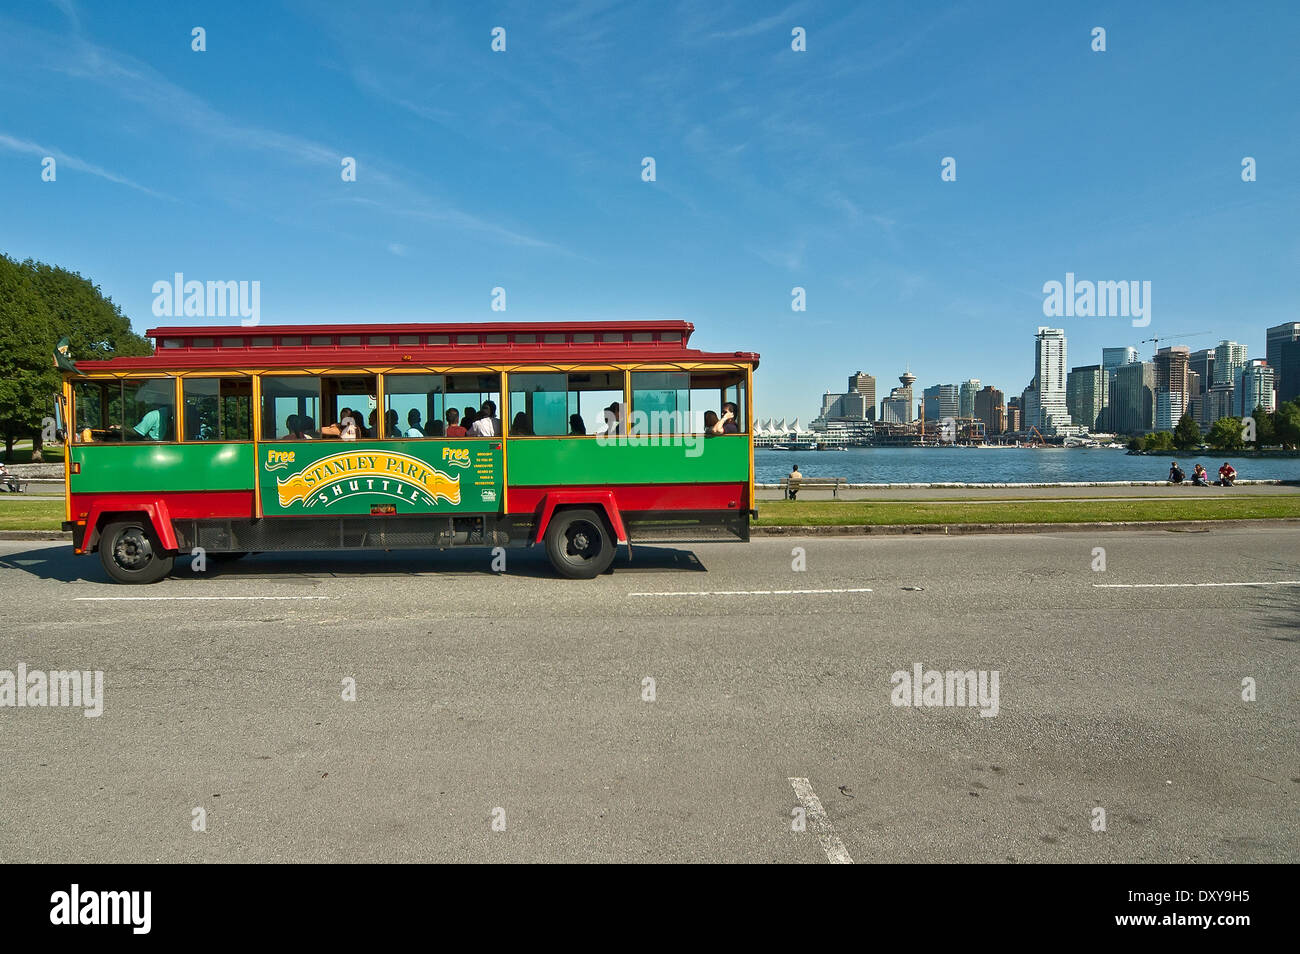 Stanley park Shuttle, Vancouver, Canada - Stock Image